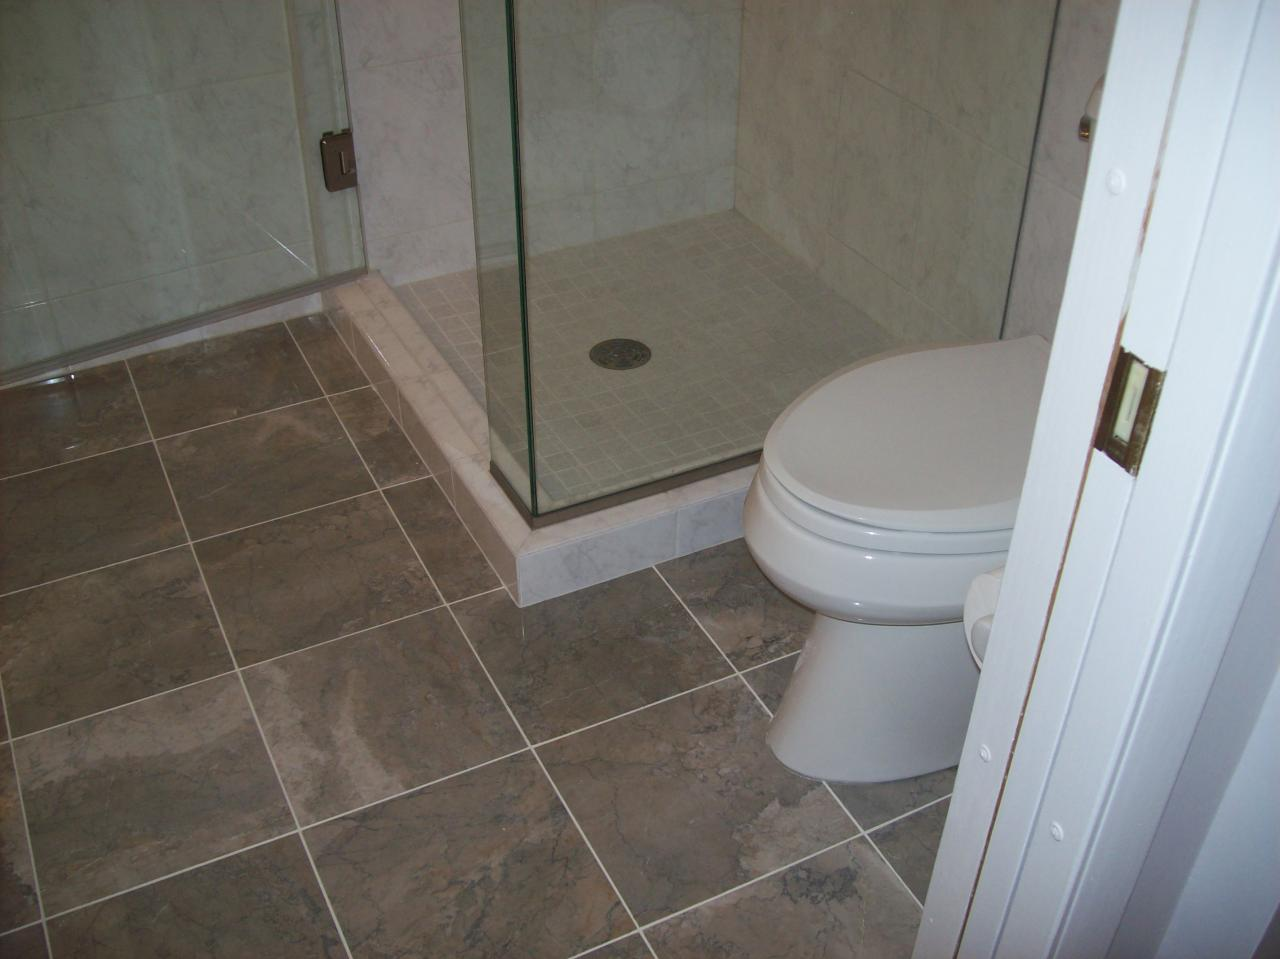 Bathroom Floor Ceramic Tile Design Ideas ~ Ideas to answer is ceramic tile good for bathroom floors